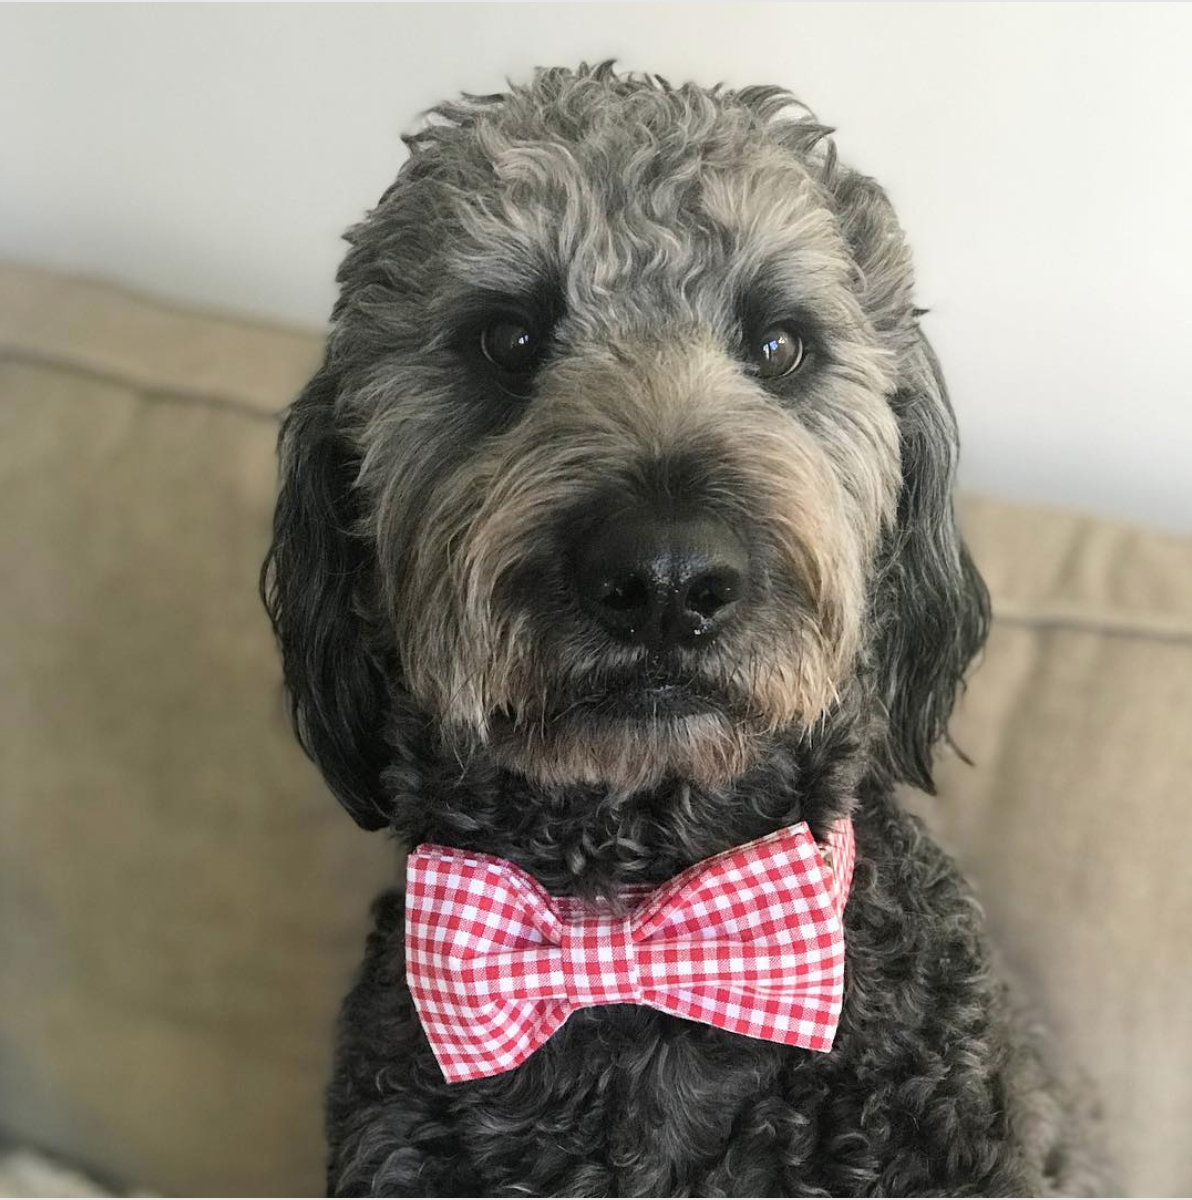 Every girl's crazy about a sharp dressed man. (Image via @jace_theblackdoodle)